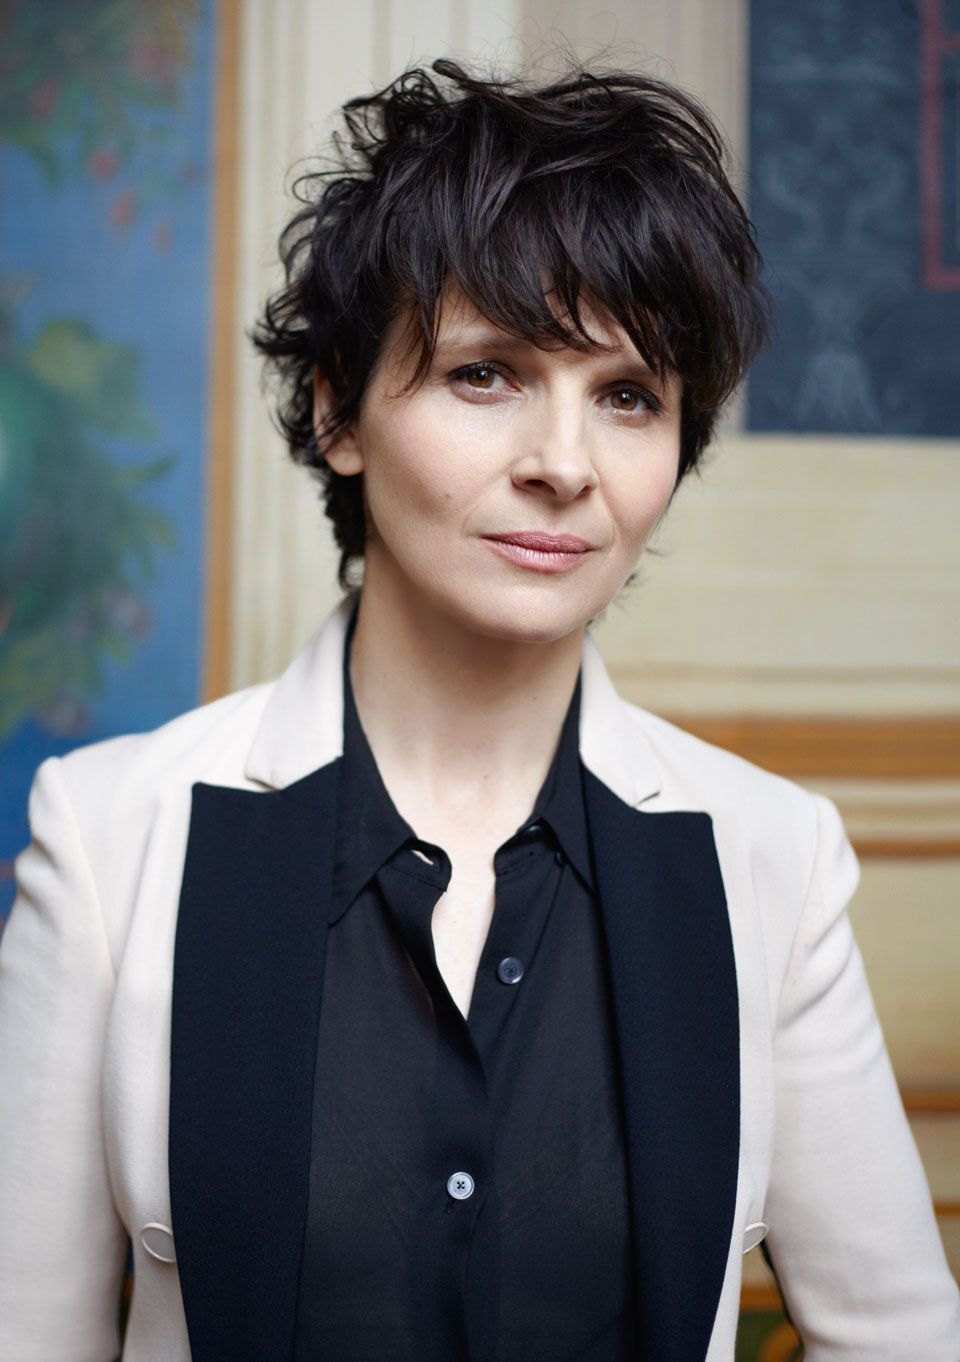 Hacked Juliette Binoche nude (69 photos), Pussy, Cleavage, Twitter, cleavage 2017